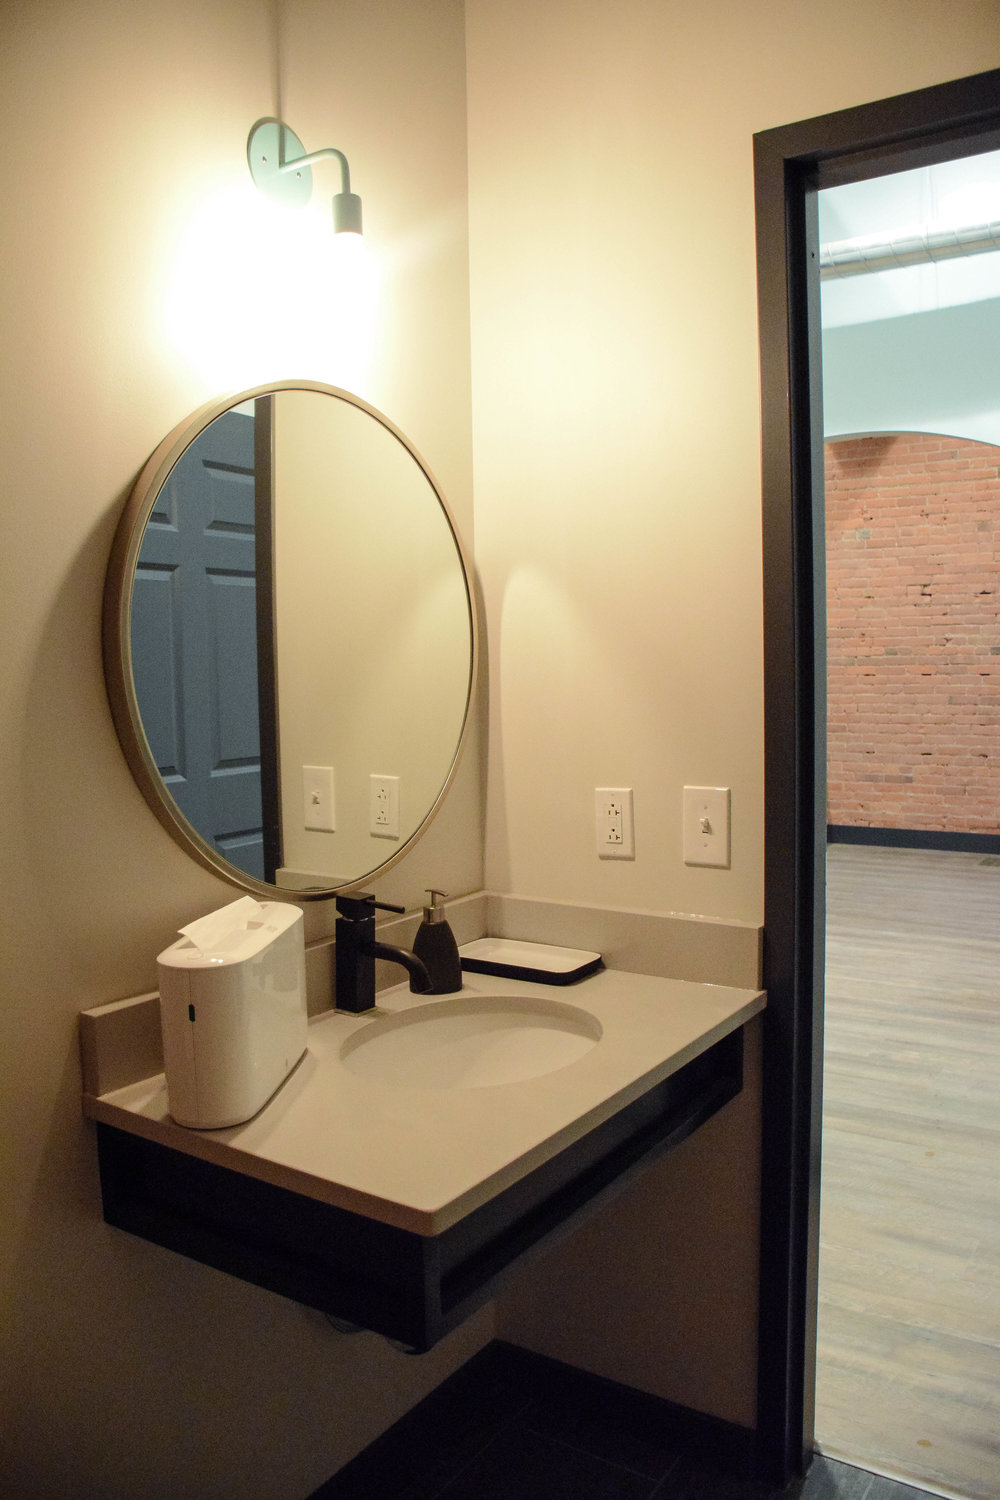 bliss buildout | iby downtown-0877.jpg